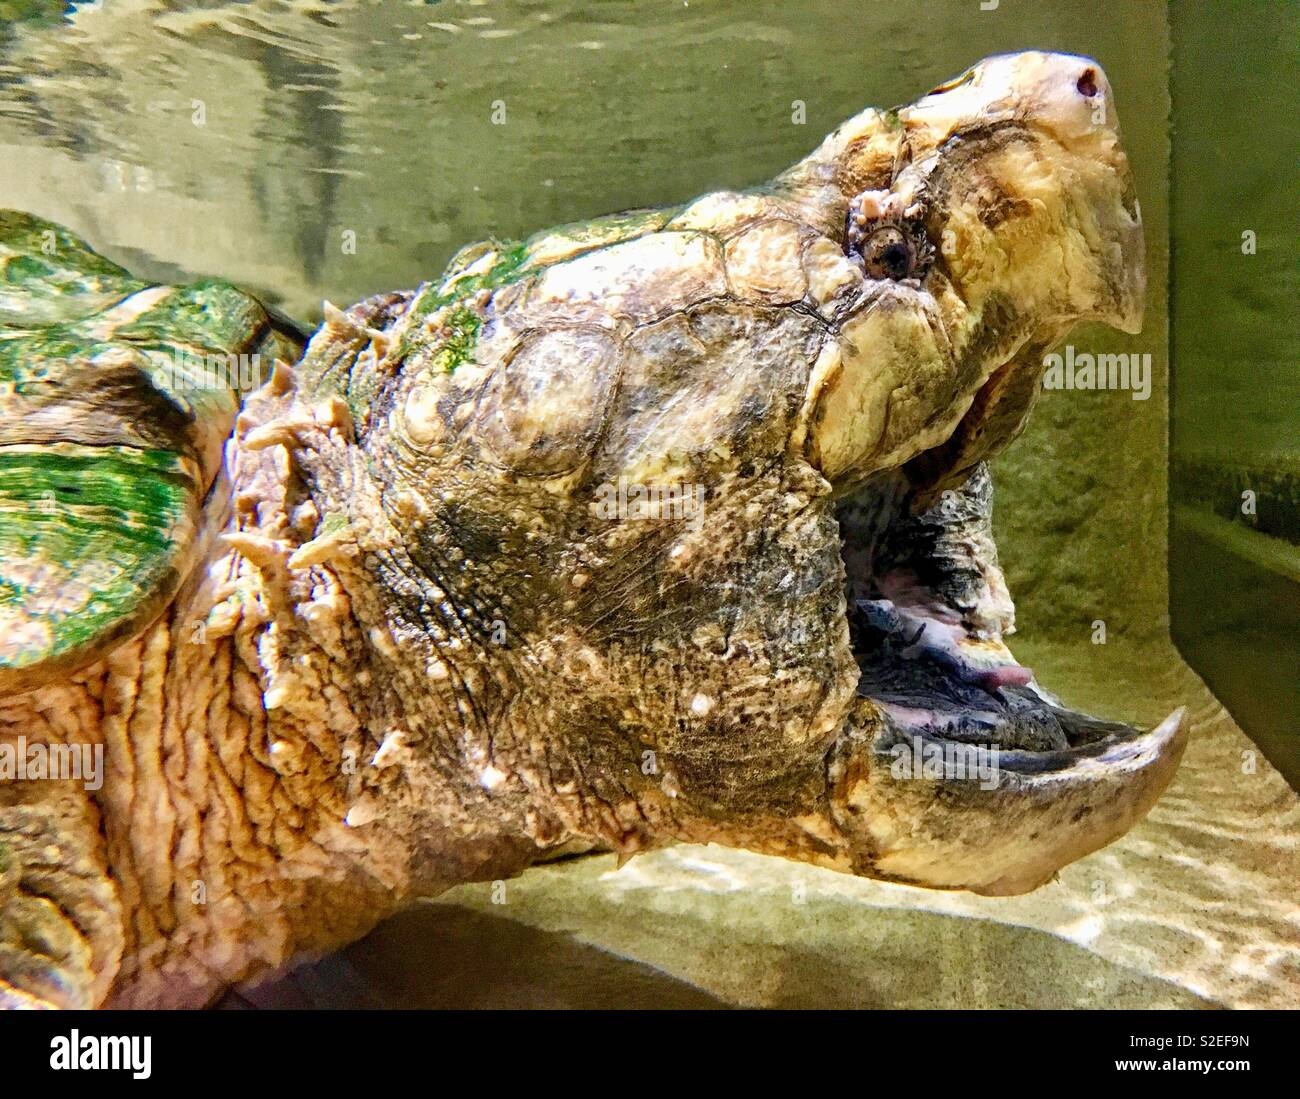 Alligator snapping turtle with wide open mouth and pointy beak - Stock Image